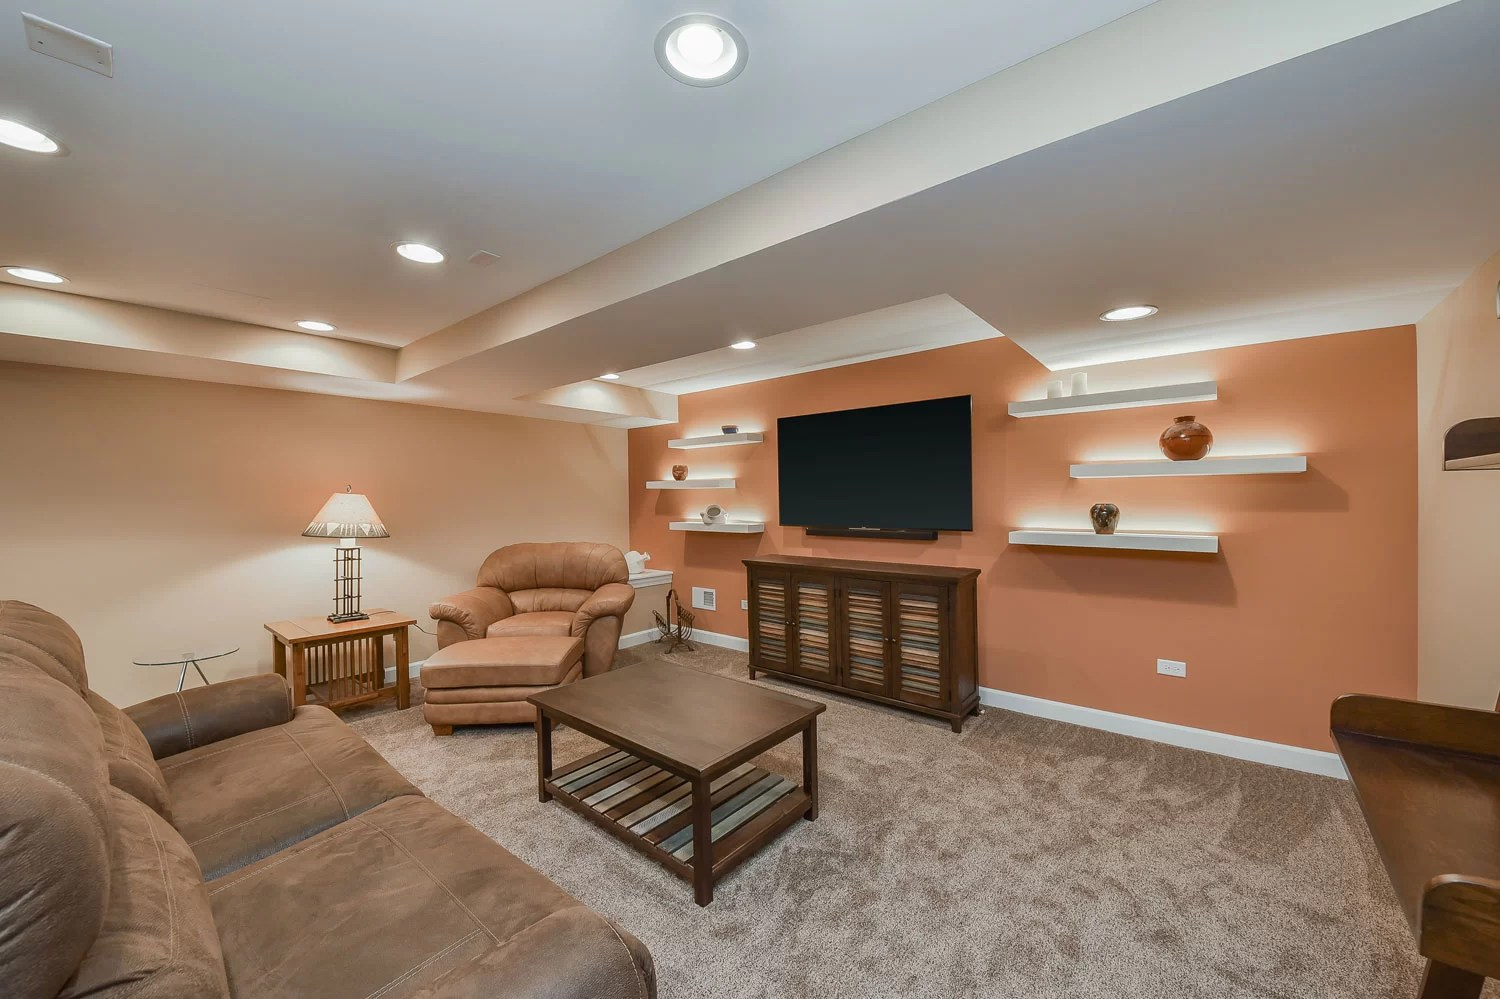 Caroles Basement Remodel Pictures  Home Remodeling